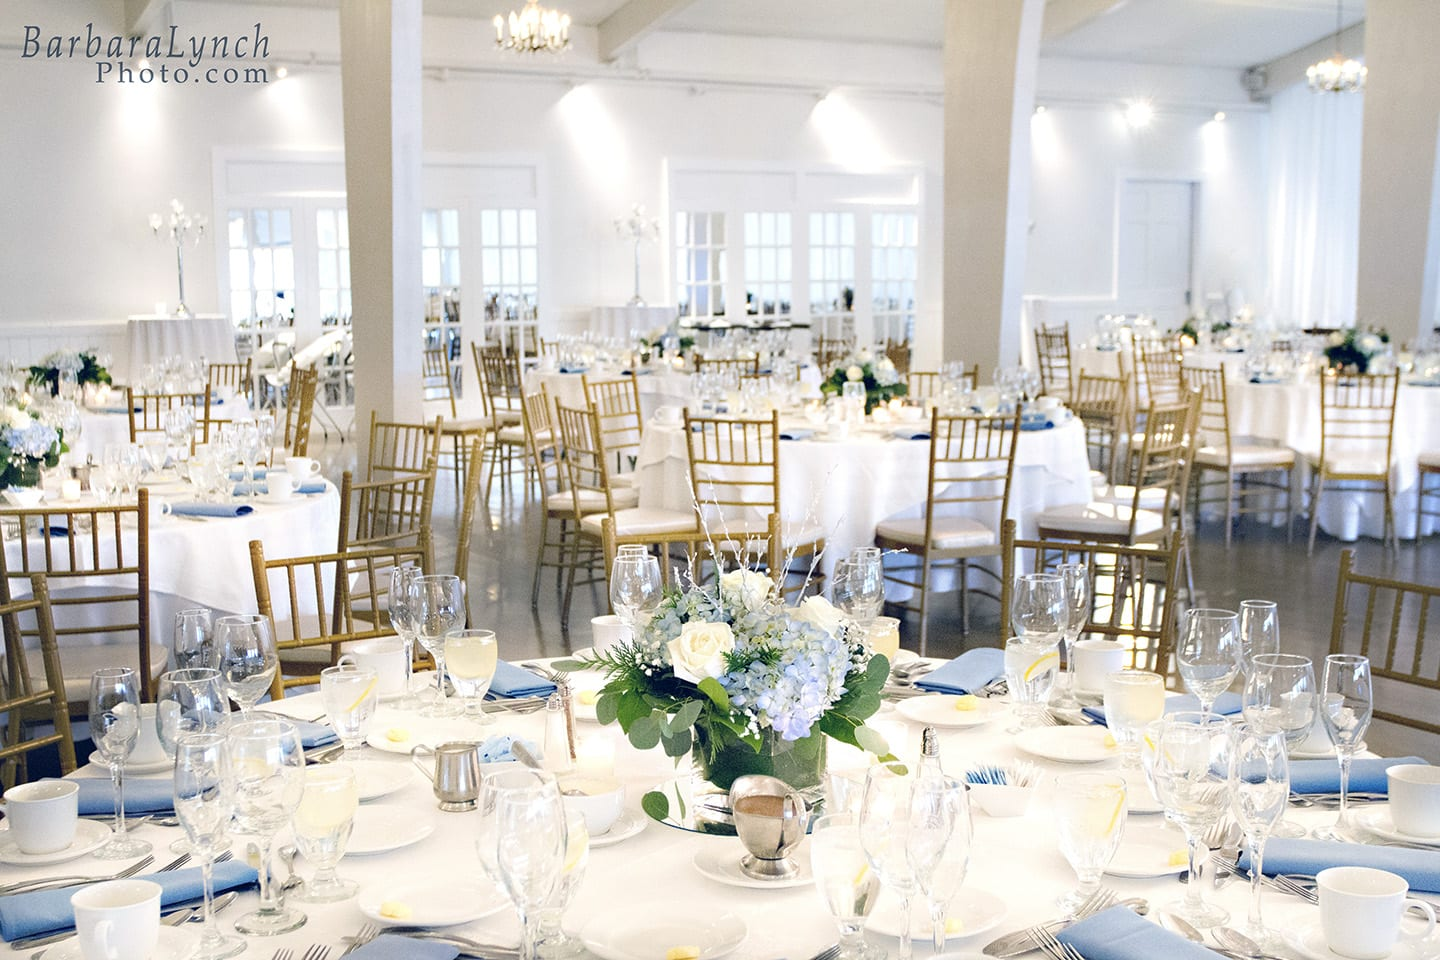 Table Settings for Weddng Reception